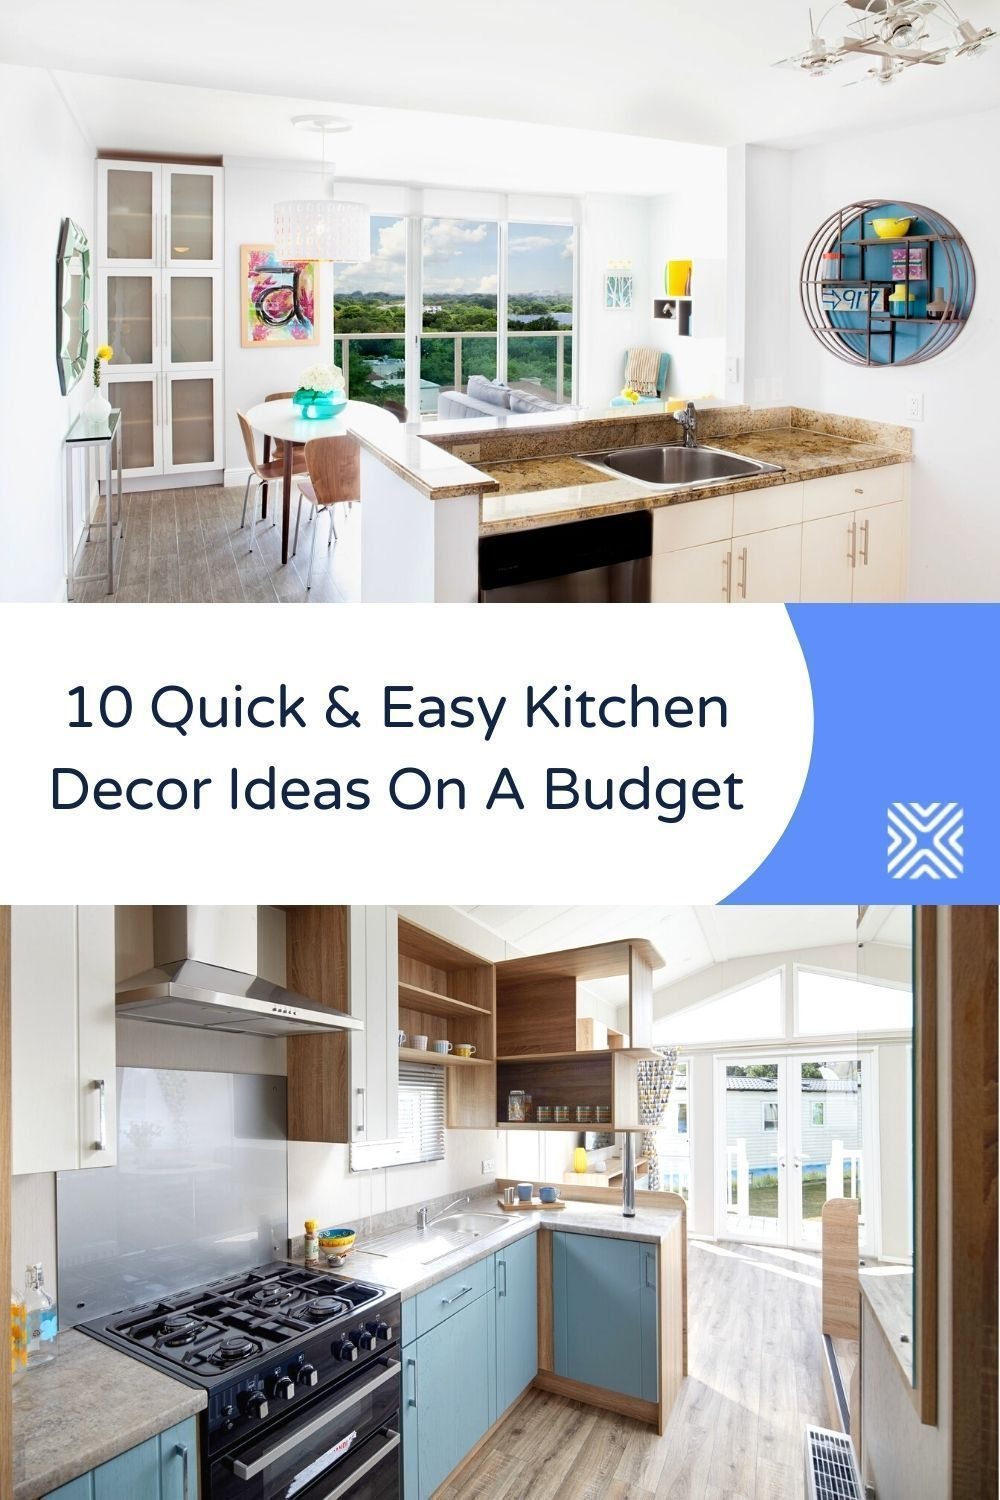 10 Quick And Easy Kitchen Decorating Ideas On A Budget Kukun Decor Renovation Cost Affordable